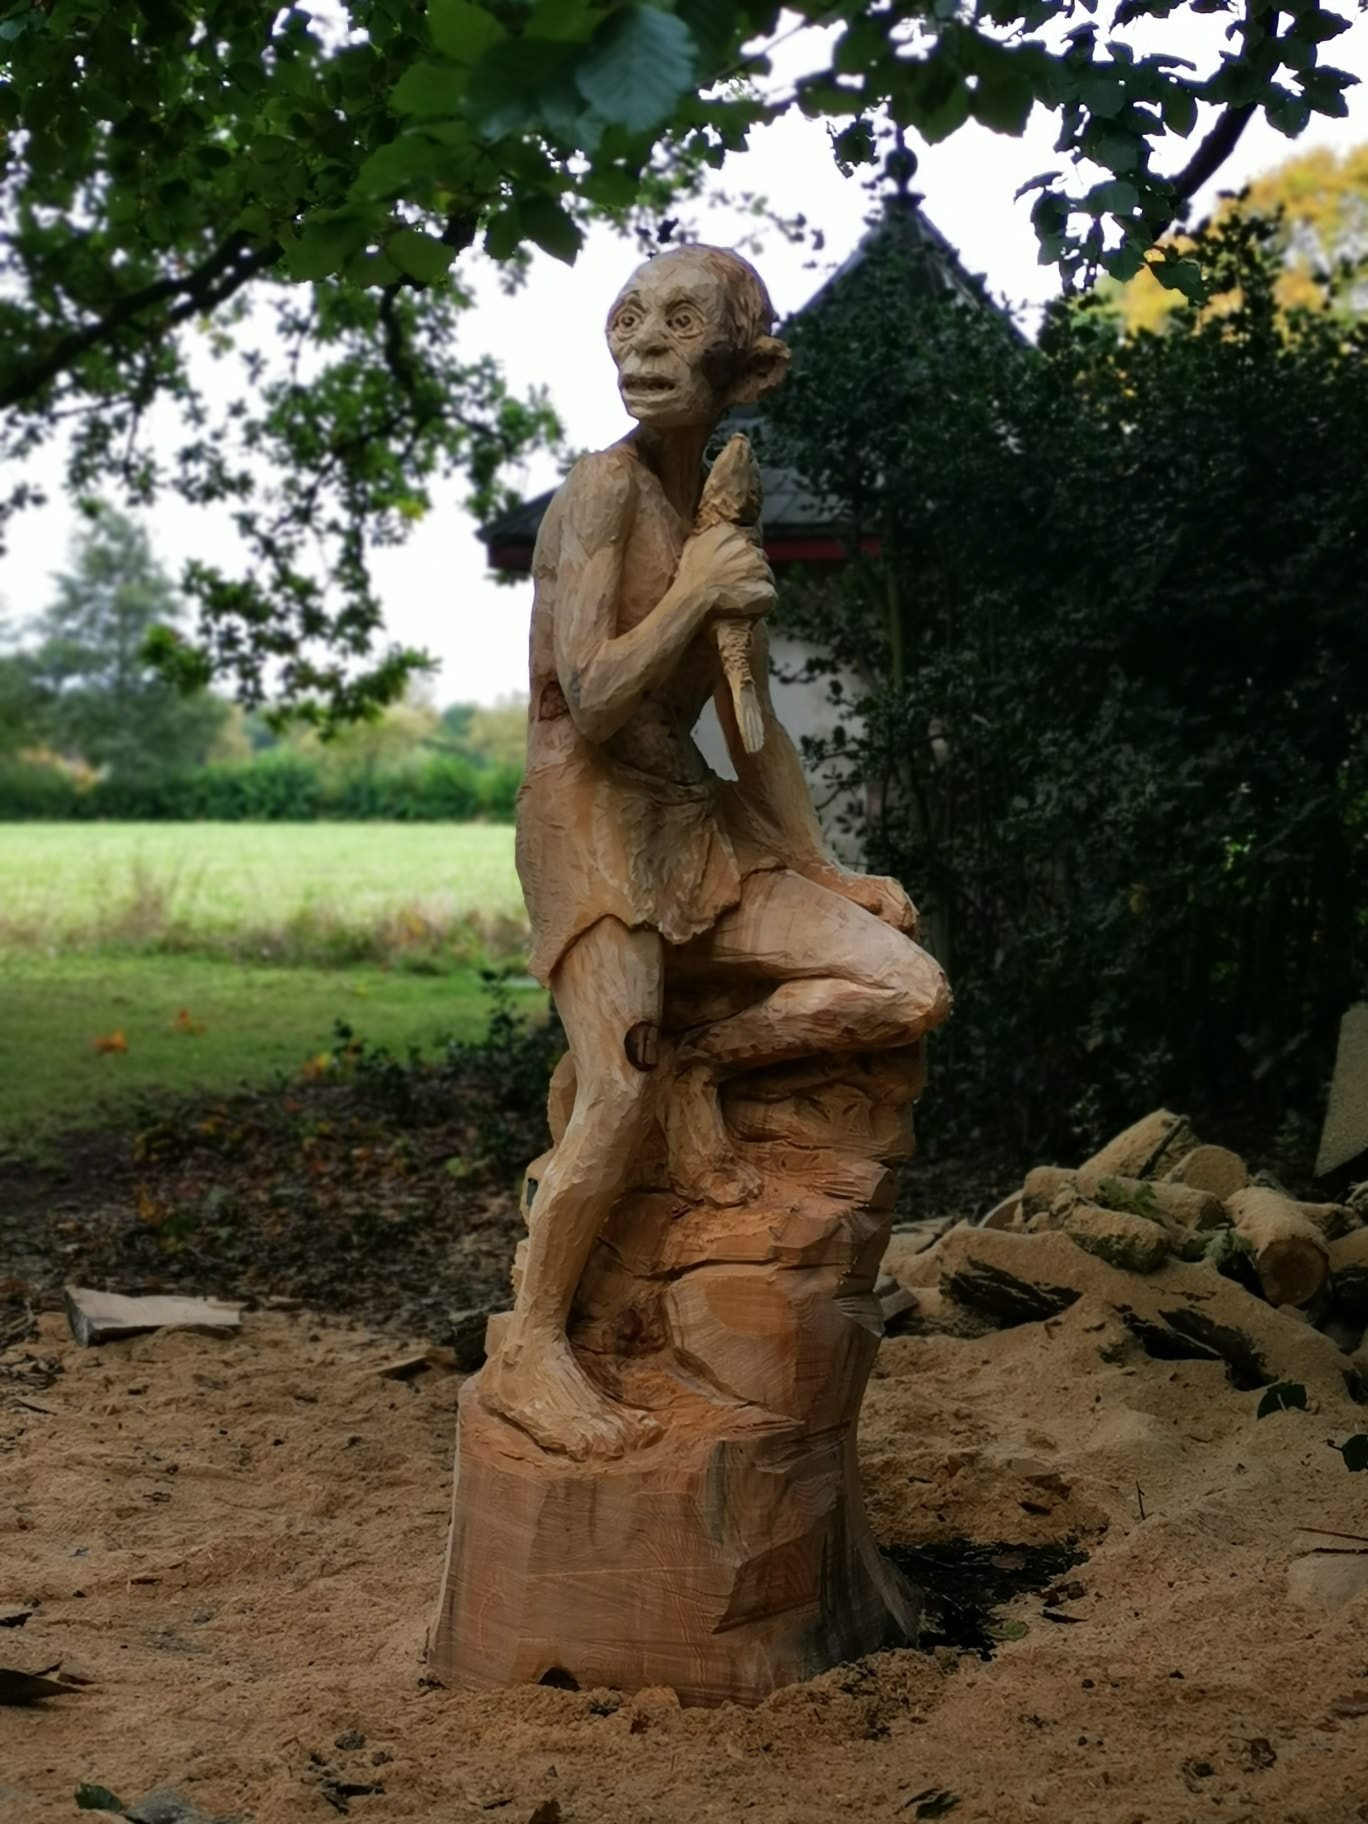 Sculpture of Gollum carved into a standing tree trunk, surrounded by the gardens at Poulton Hall. Sculpture is the work of chainsaw carving artist Simon O'Rourke